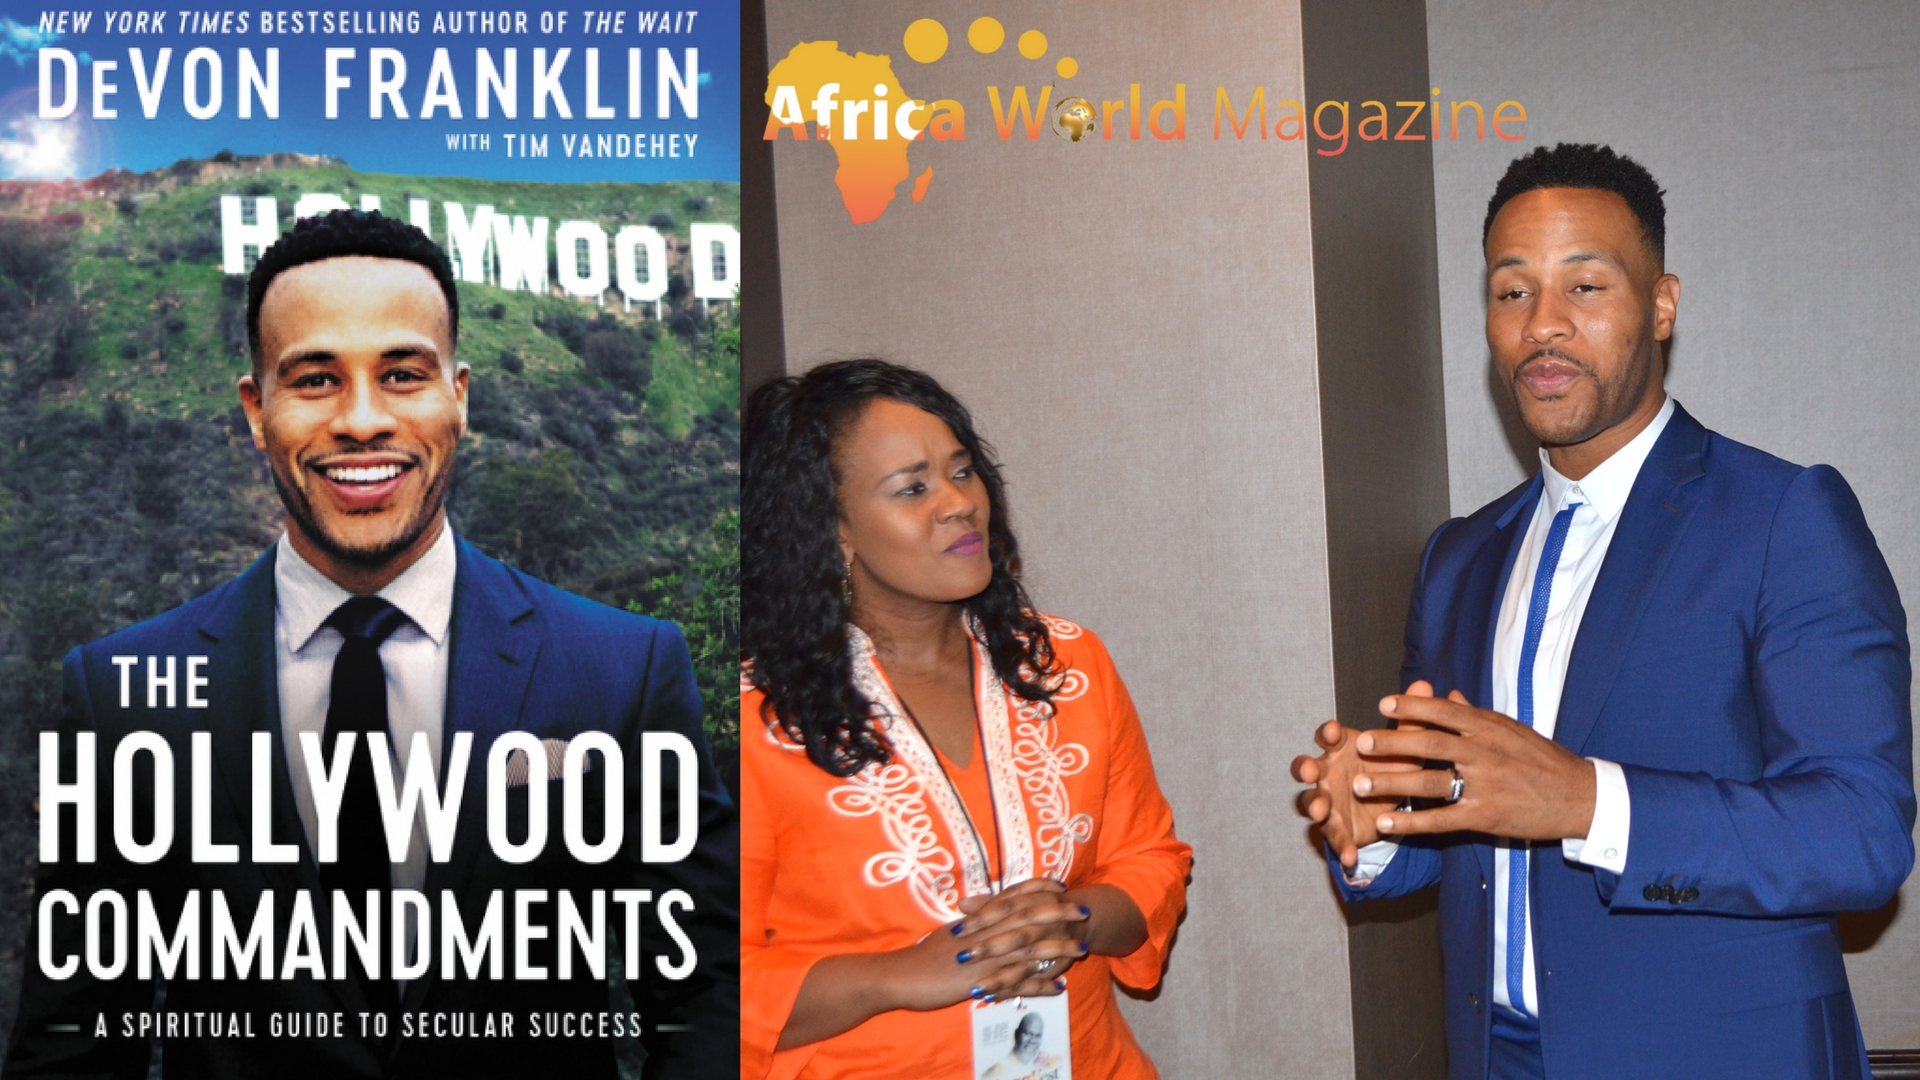 THE  HOLLYWOOD  COMMANDMENTS- A  SPIRITUAL  GUIDE  TO  SECULAR  SUCCESS   BY  DEVON  FRANKLIN-  MUST  READ!